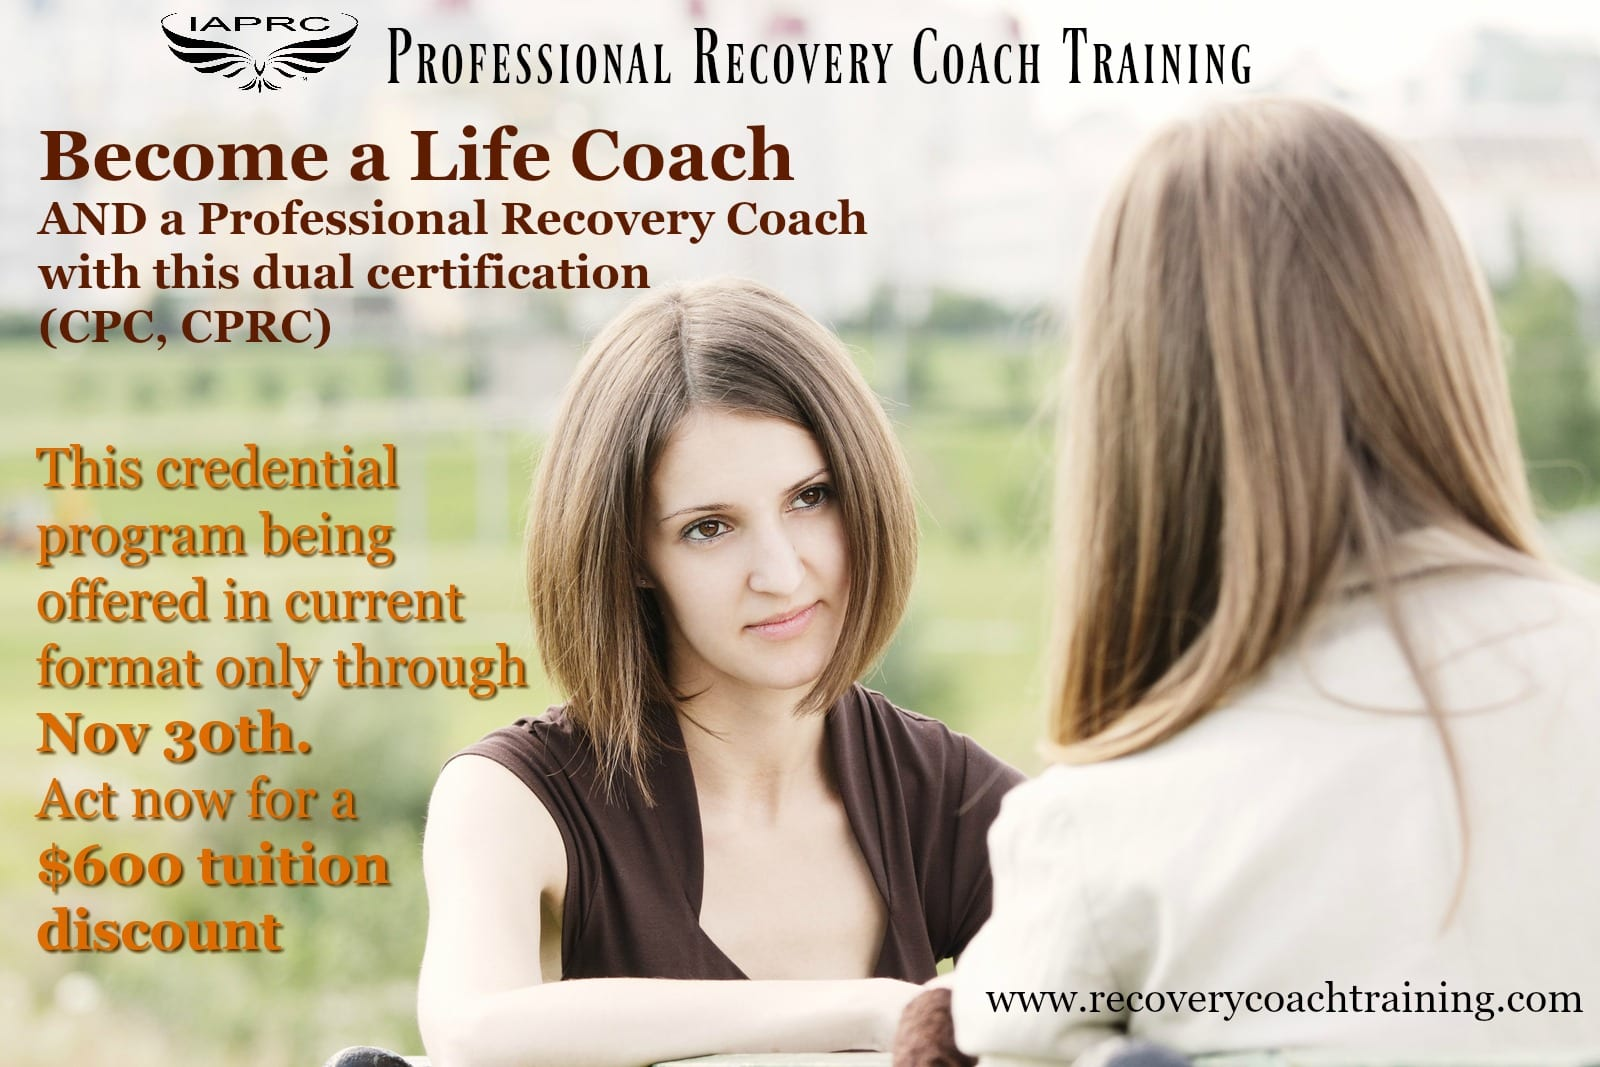 Our Coaching Programs Are Changing Recoverycoachtrainingfl